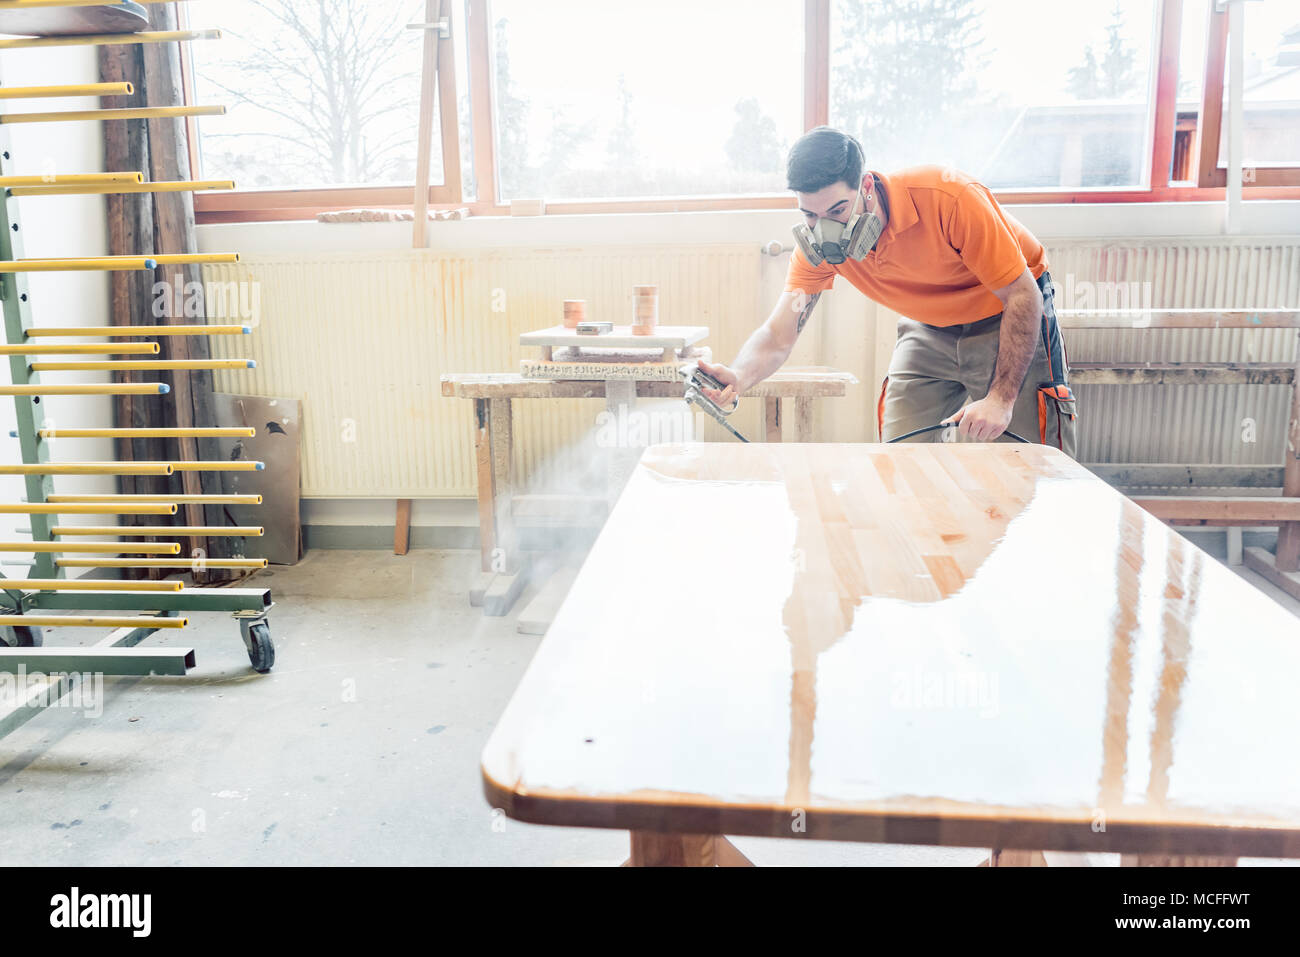 carpenter man spraying varnish on a table he works on - Stock Image